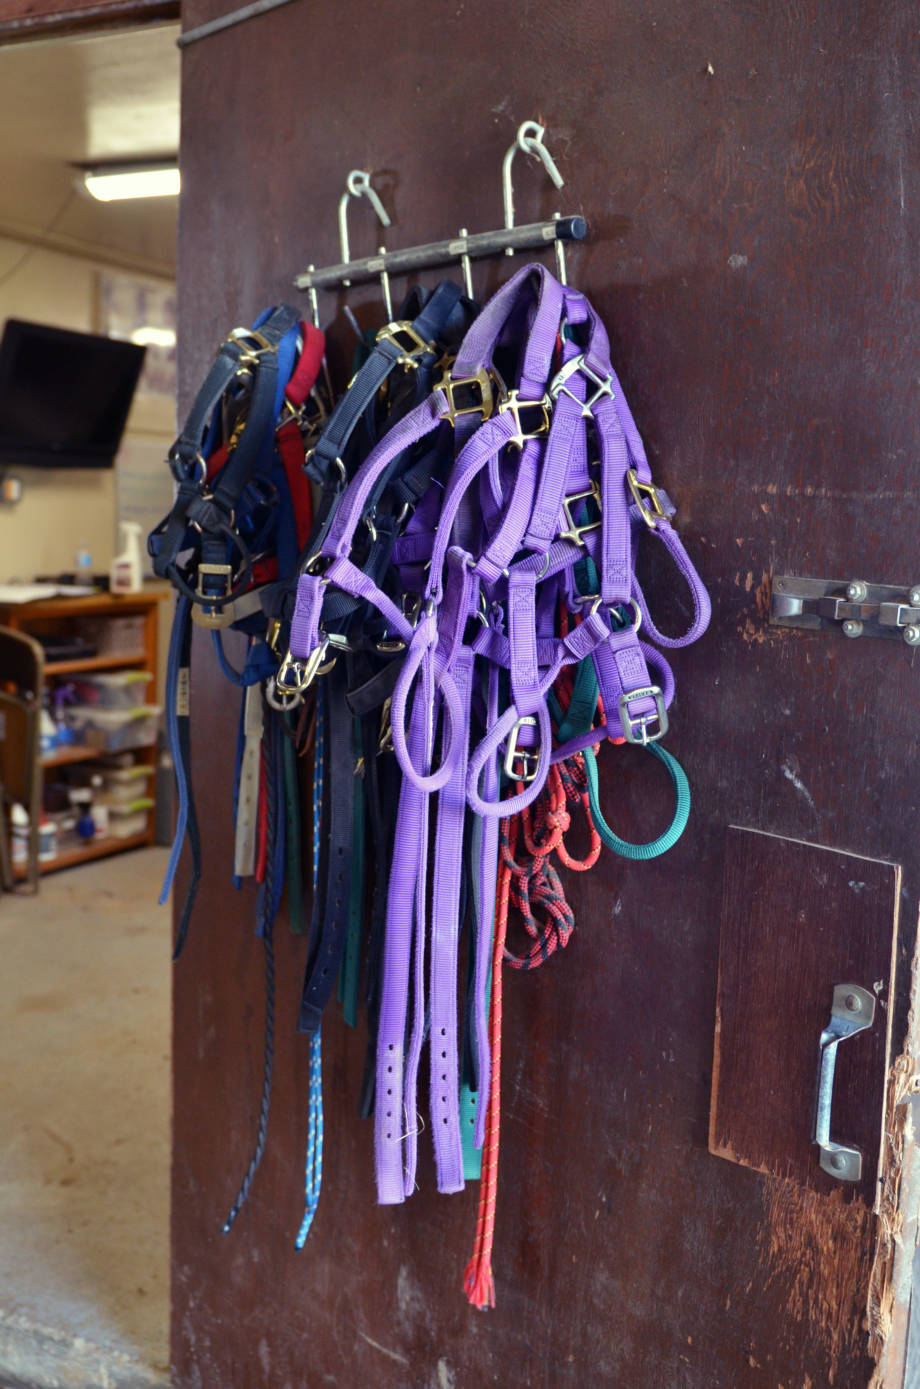 Colorful training bridles hang from a door at the MU Equine Teaching Facility.